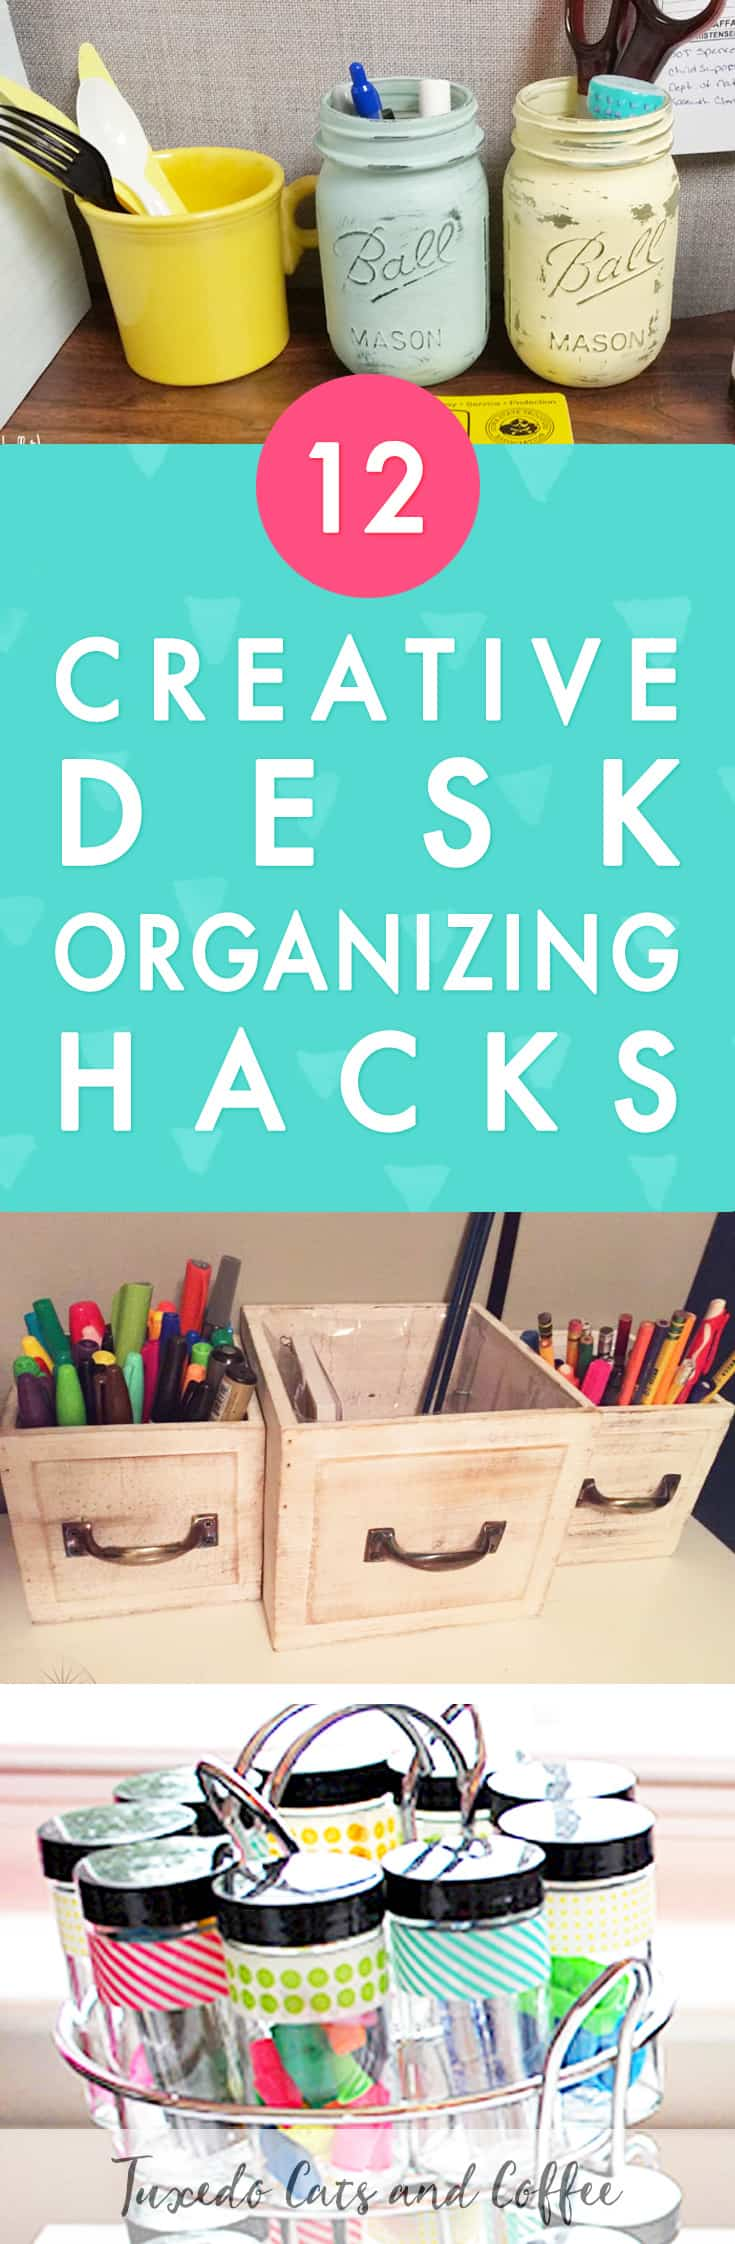 Is your office or desk space a cluttered mess? Are you finding it hard to be productive or get things done because you can't find anything and your desk is covered in papers and junk? Here are 12 genius desk organizing hacks to help get your home office together!